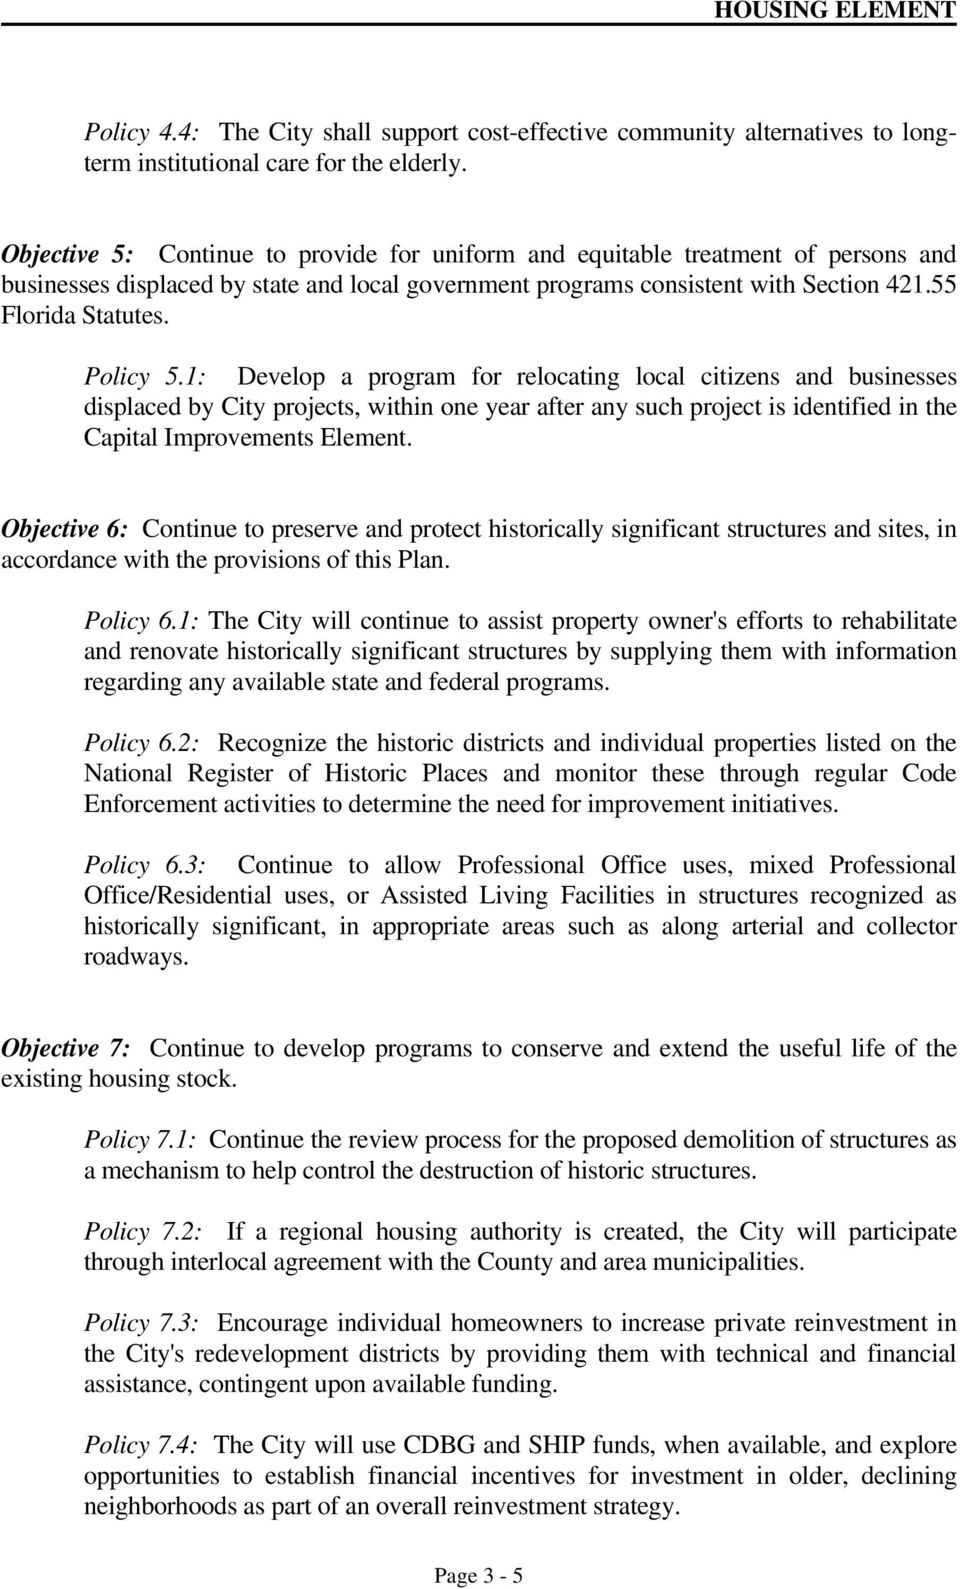 Policy 5.1: Develop a program for relocating local citizens and businesses displaced by City projects, within one year after any such project is identified in the Capital Improvements Element.